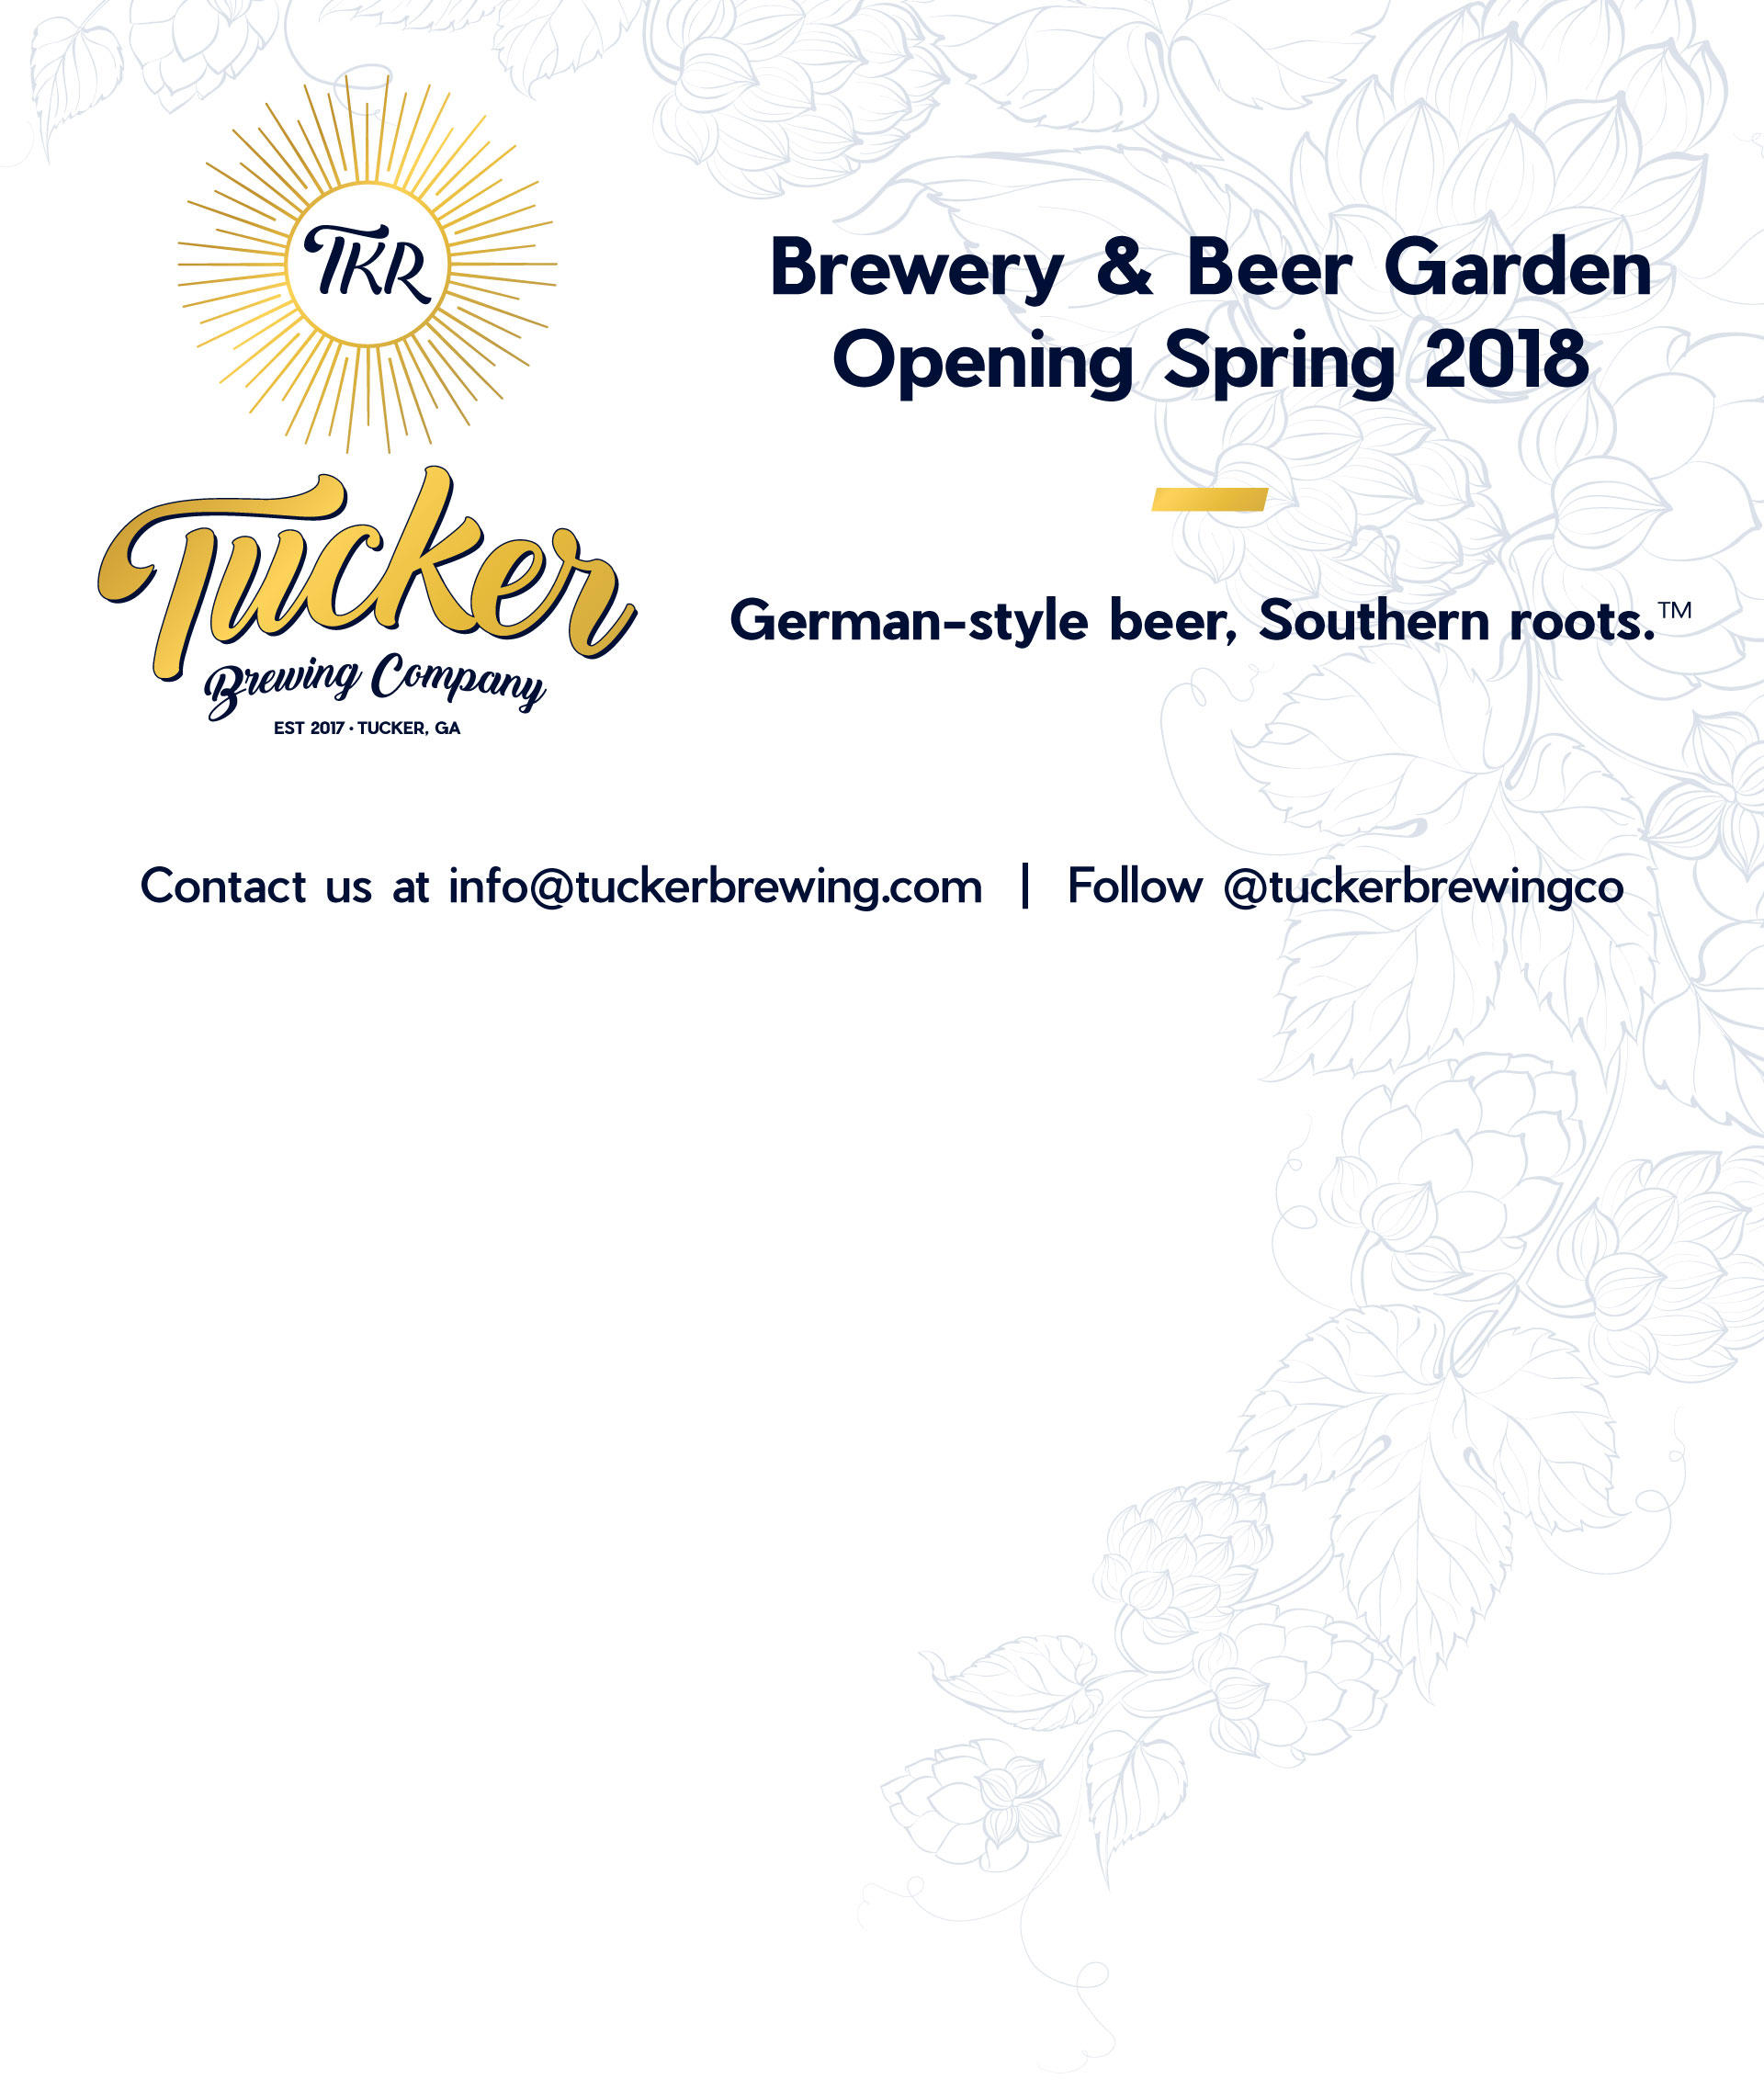 Tucker Brewing Company - Opening Spring 2018